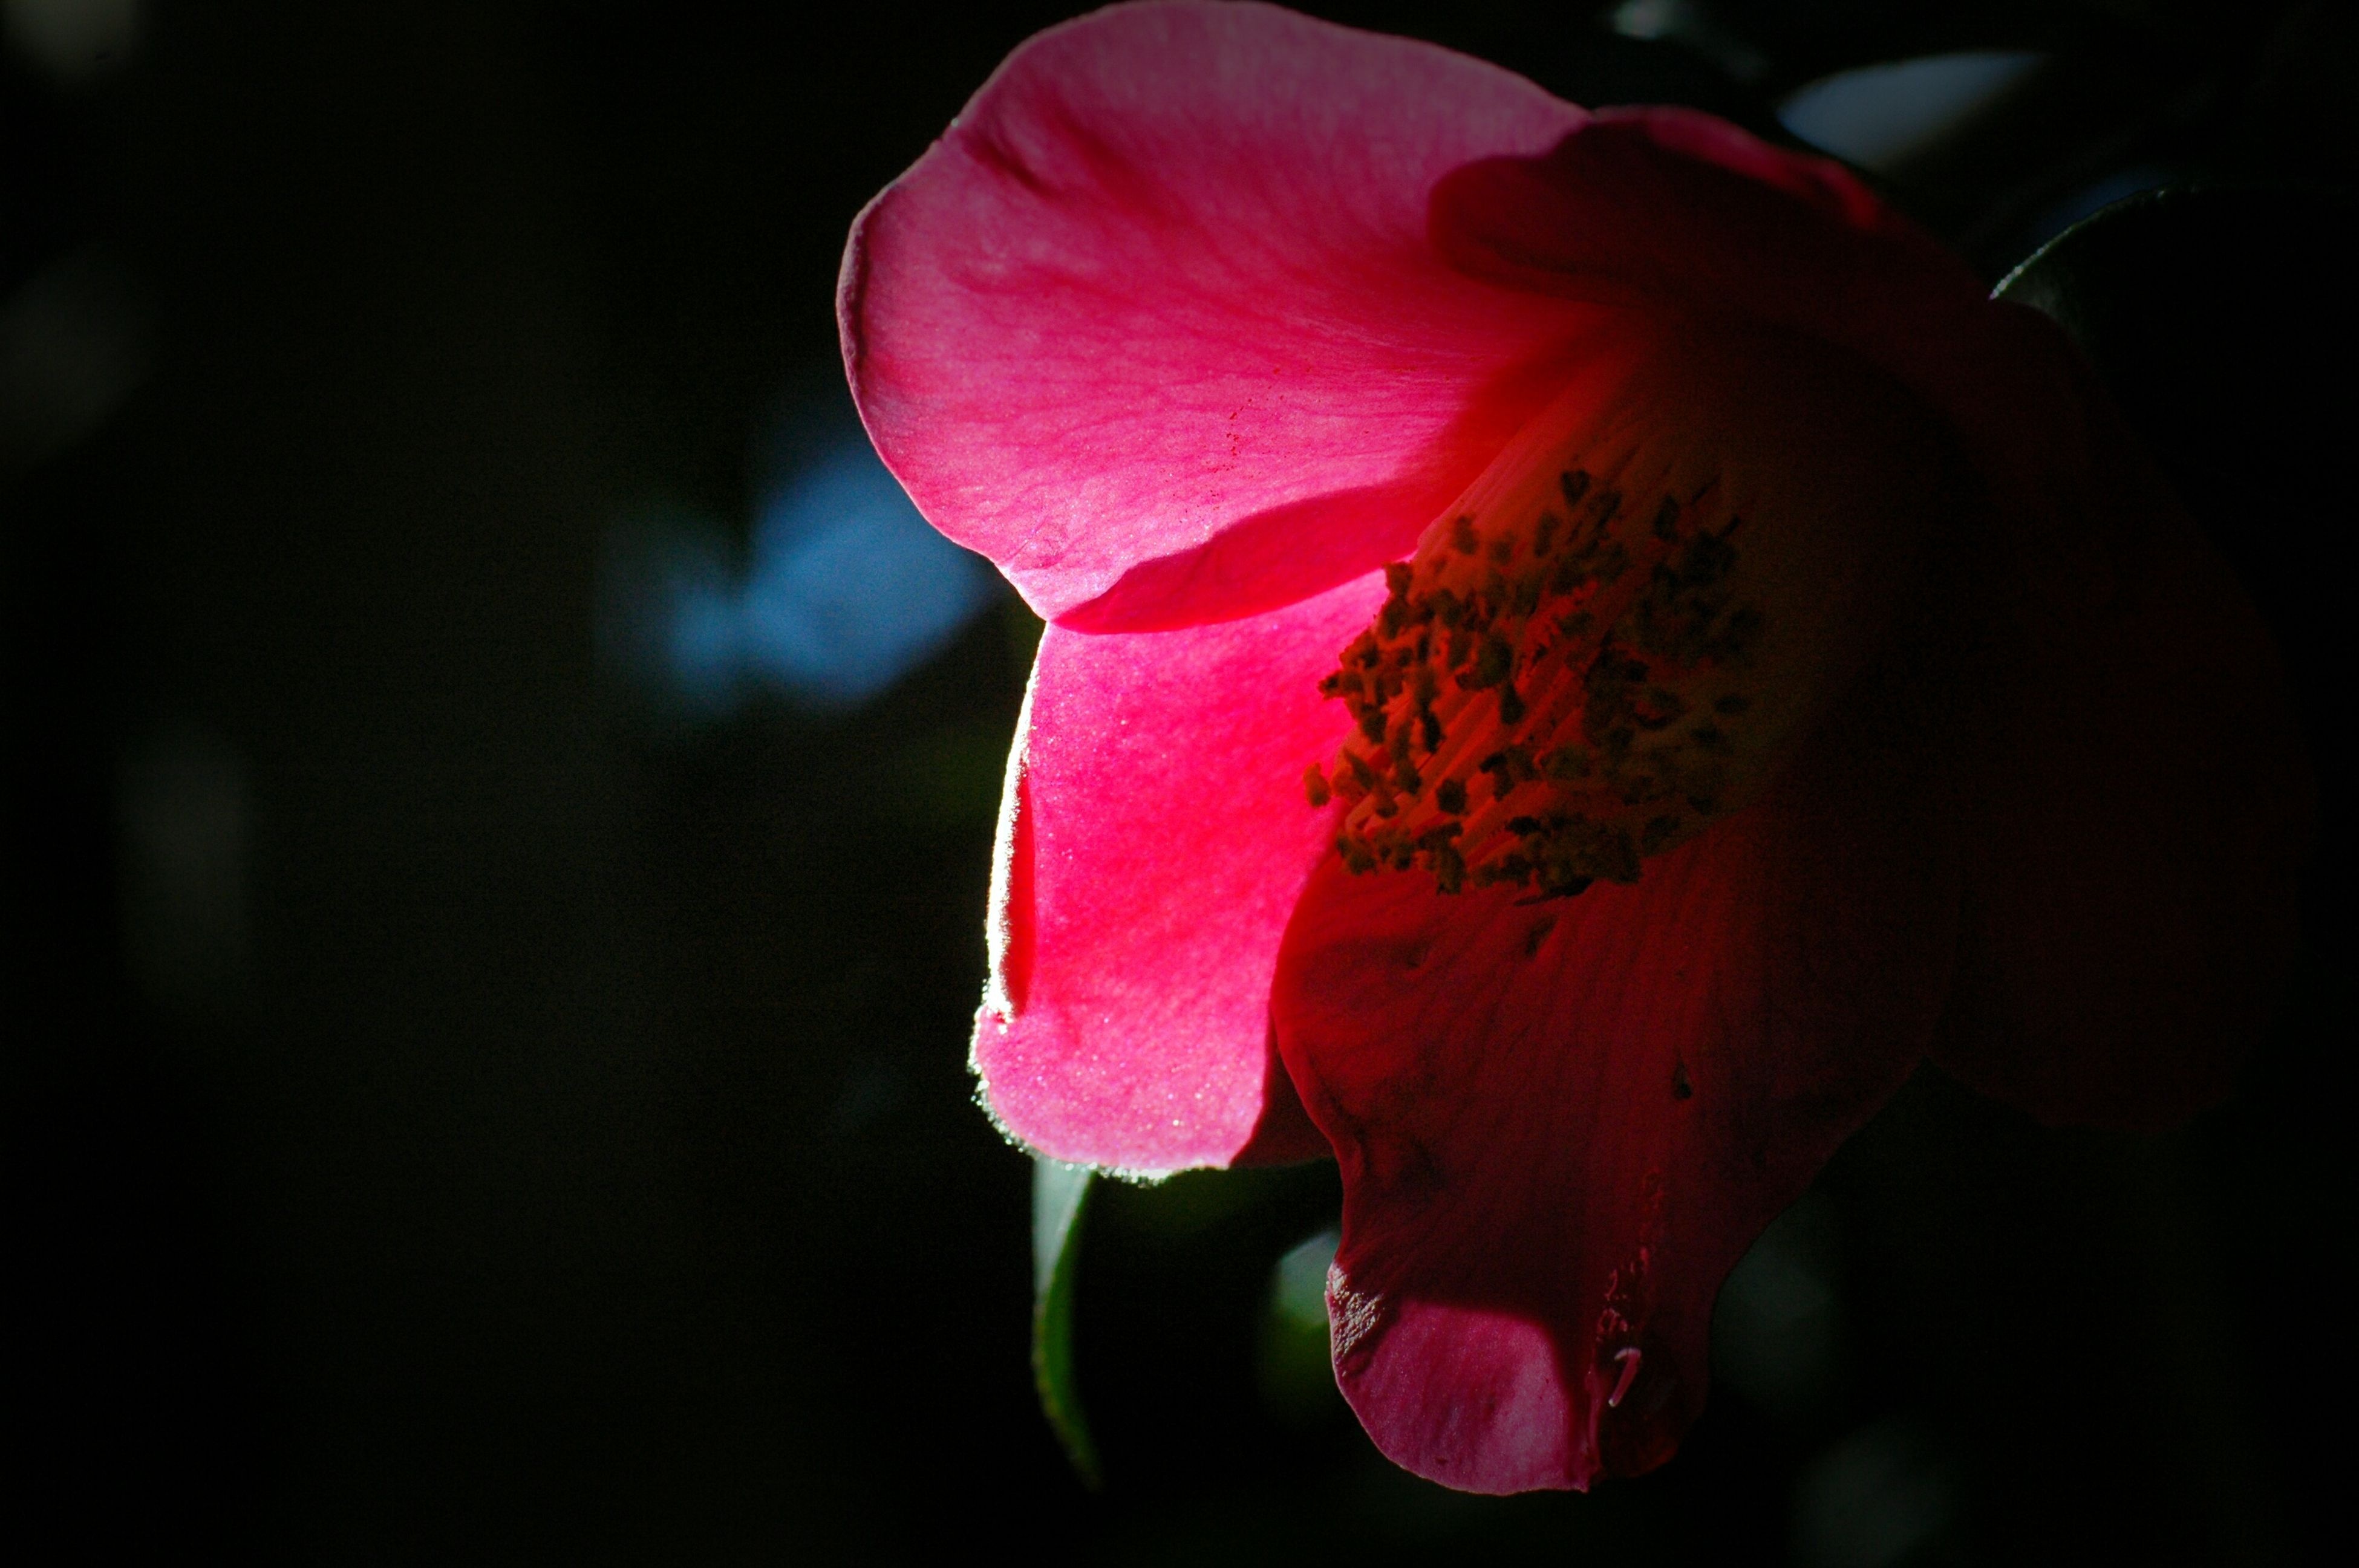 flower, petal, flower head, fragility, focus on foreground, freshness, close-up, pink color, beauty in nature, single flower, red, nature, growth, blooming, plant, selective focus, outdoors, in bloom, stem, day